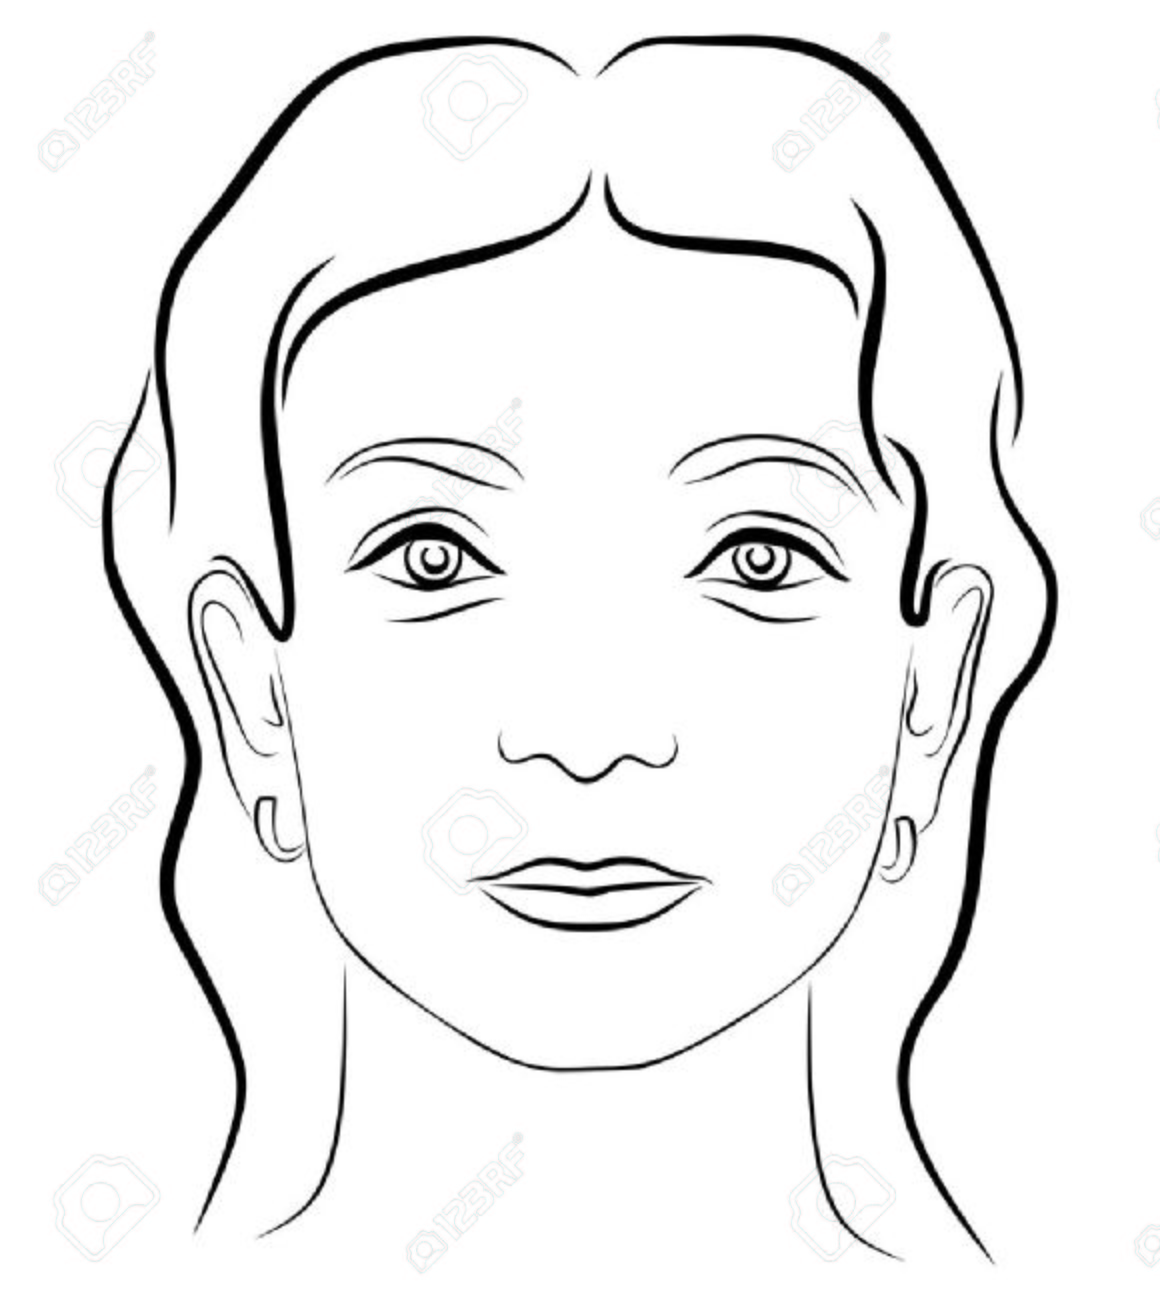 Black and white drawing young woman's face 3 - 7881037